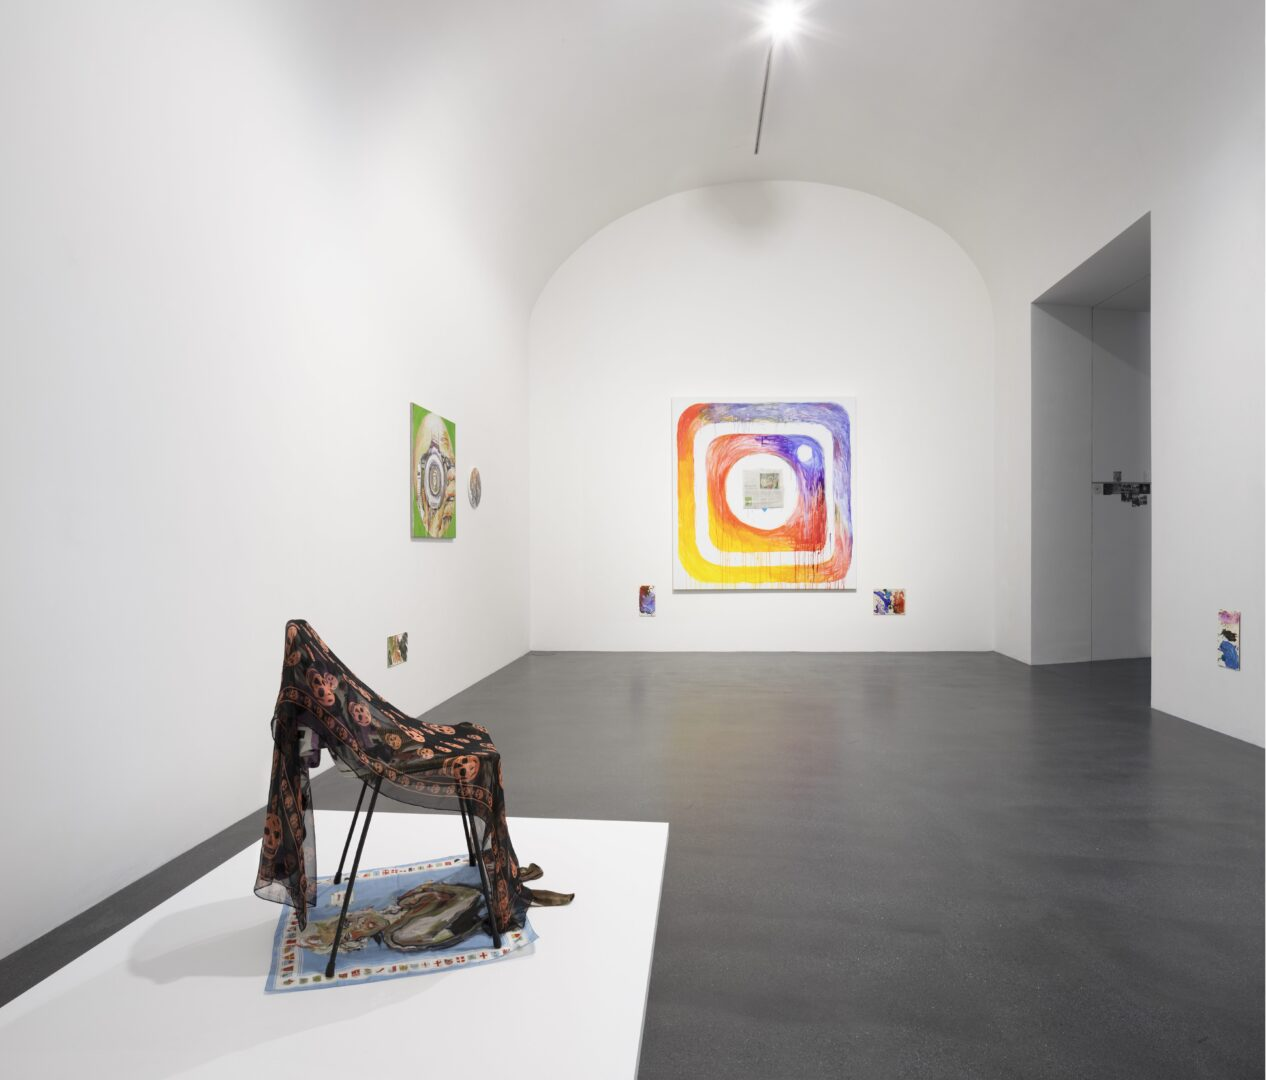 Exhibition View Groupshow «Up to and Including Limits: After Carolee Schneemann; view on Elke Silvia Krystufek, installation view, all works 2019» at Muzeum Susch, Susch, 2019-2020 / Photo: Maja Wirkus / Courtesy: the artist and Muzeum Susch